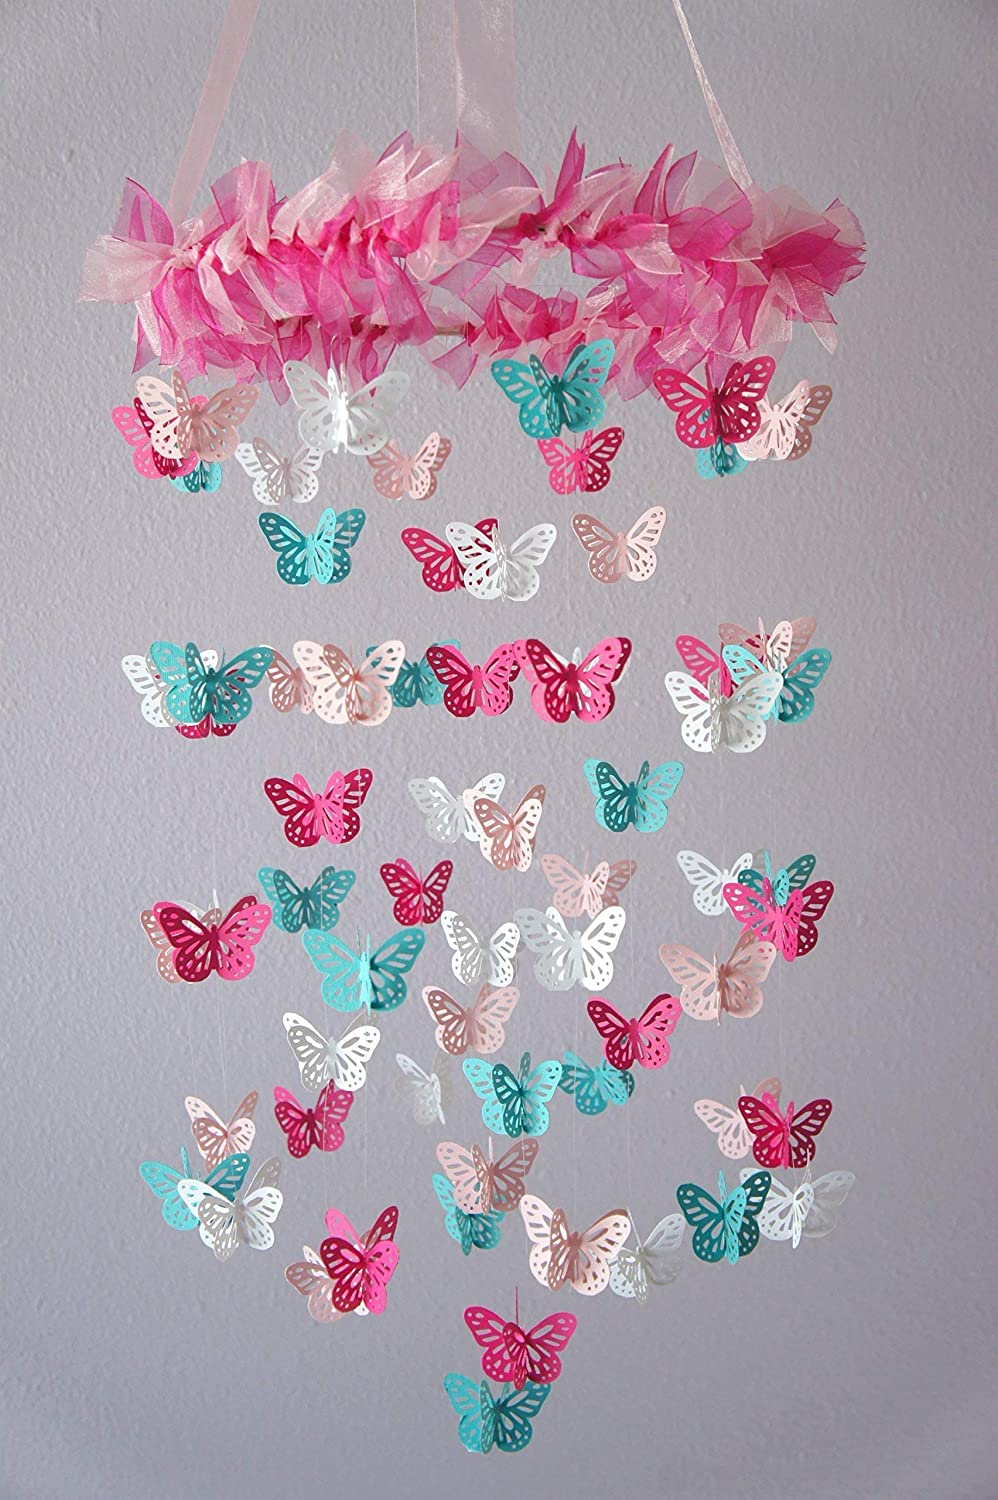 Butterfly Nursery Mobile in Hot Pink, Light Pink, Aqua & White